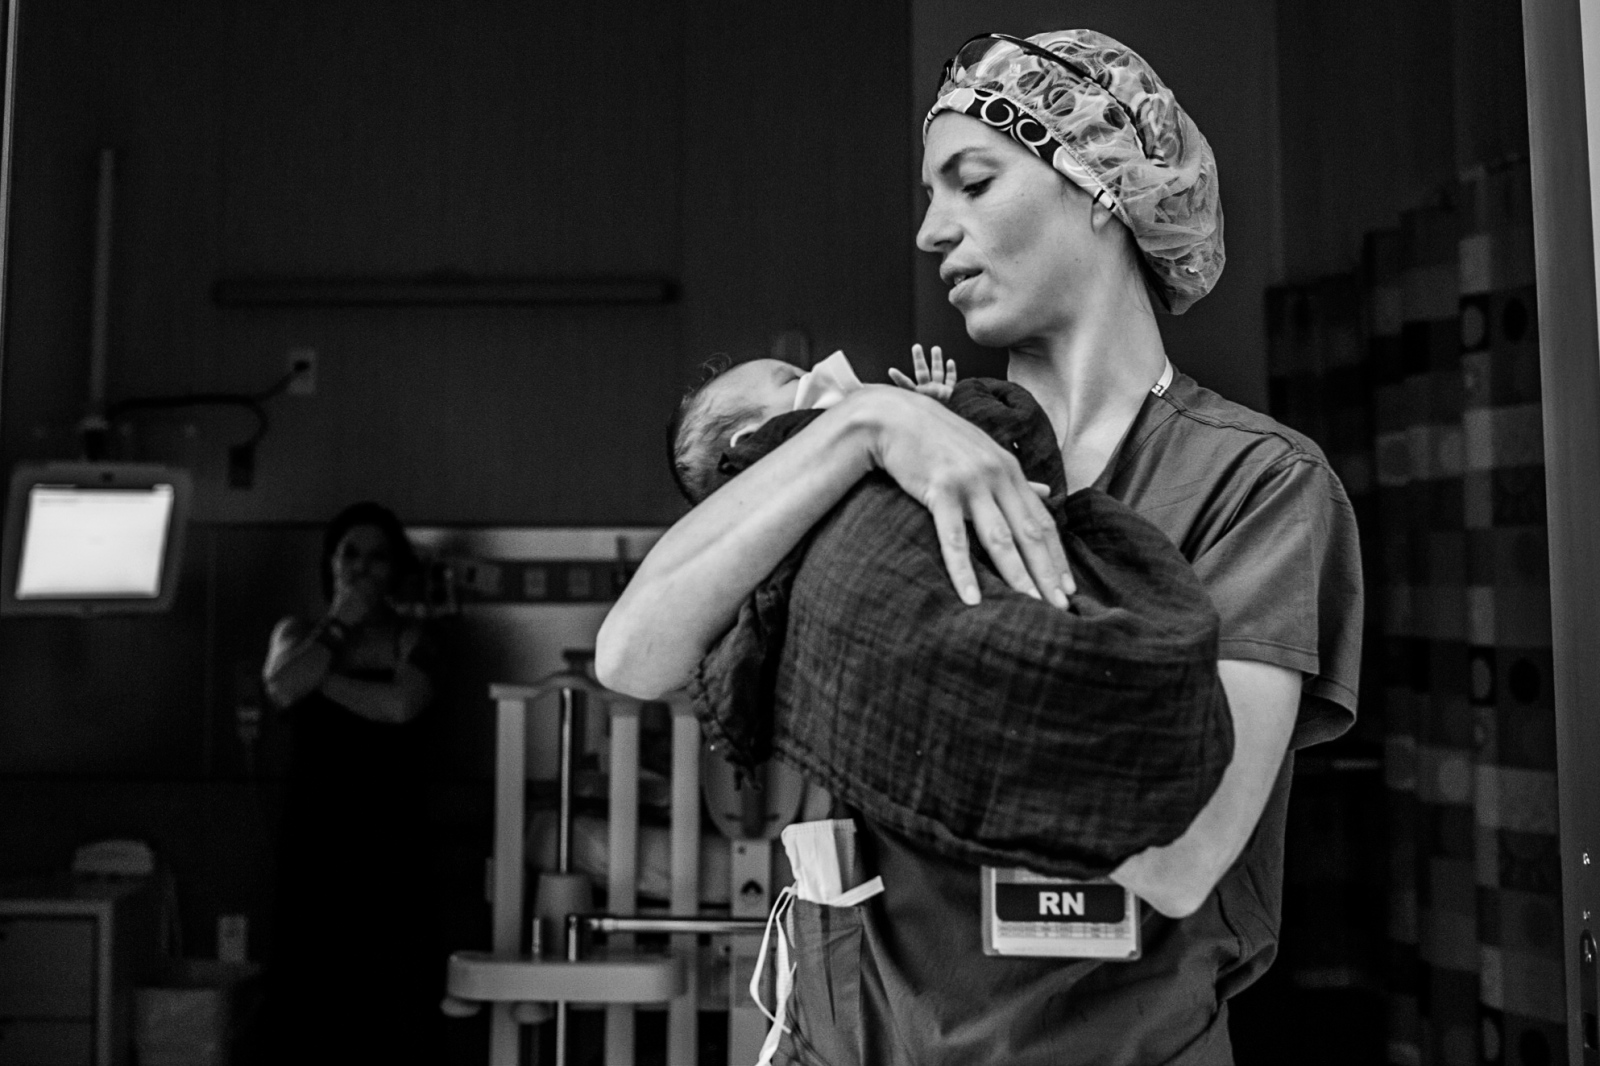 An OR nurse carries Sky to surgery at Randall Children's Hospital.